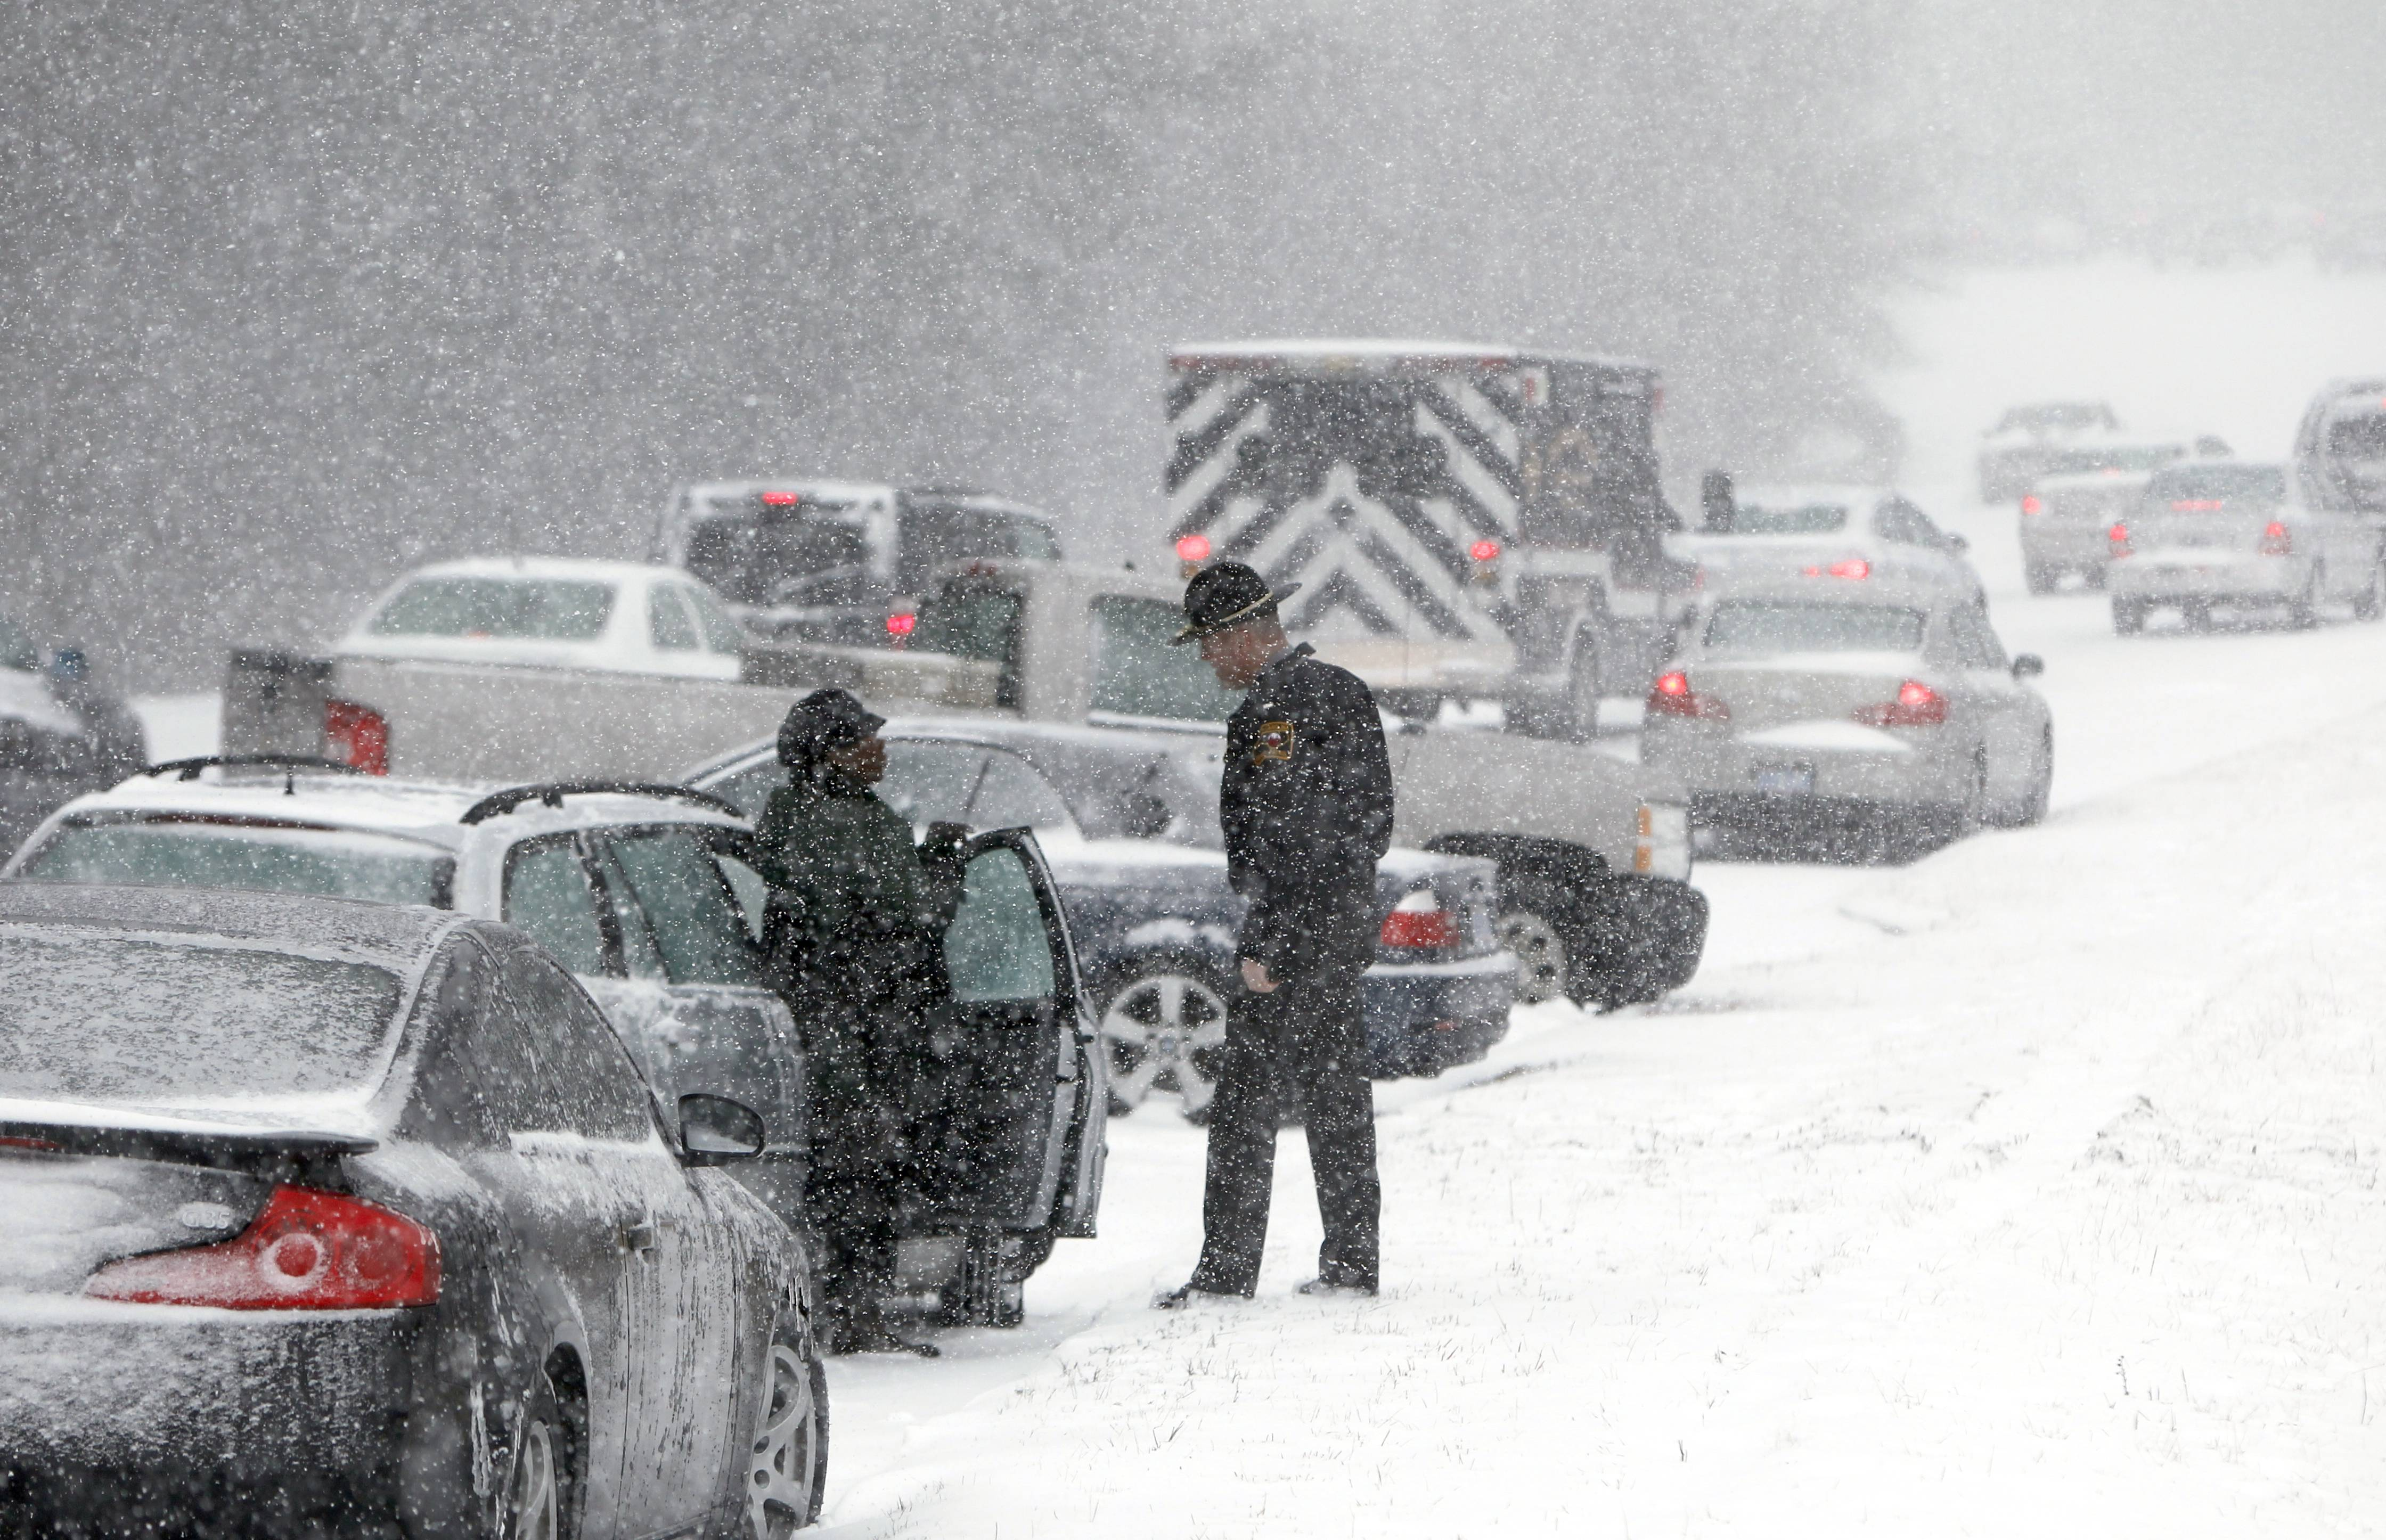 A Highway Patrol officer checks on a stranded motorist during a winter storm Wednesday in Durham, N.C.